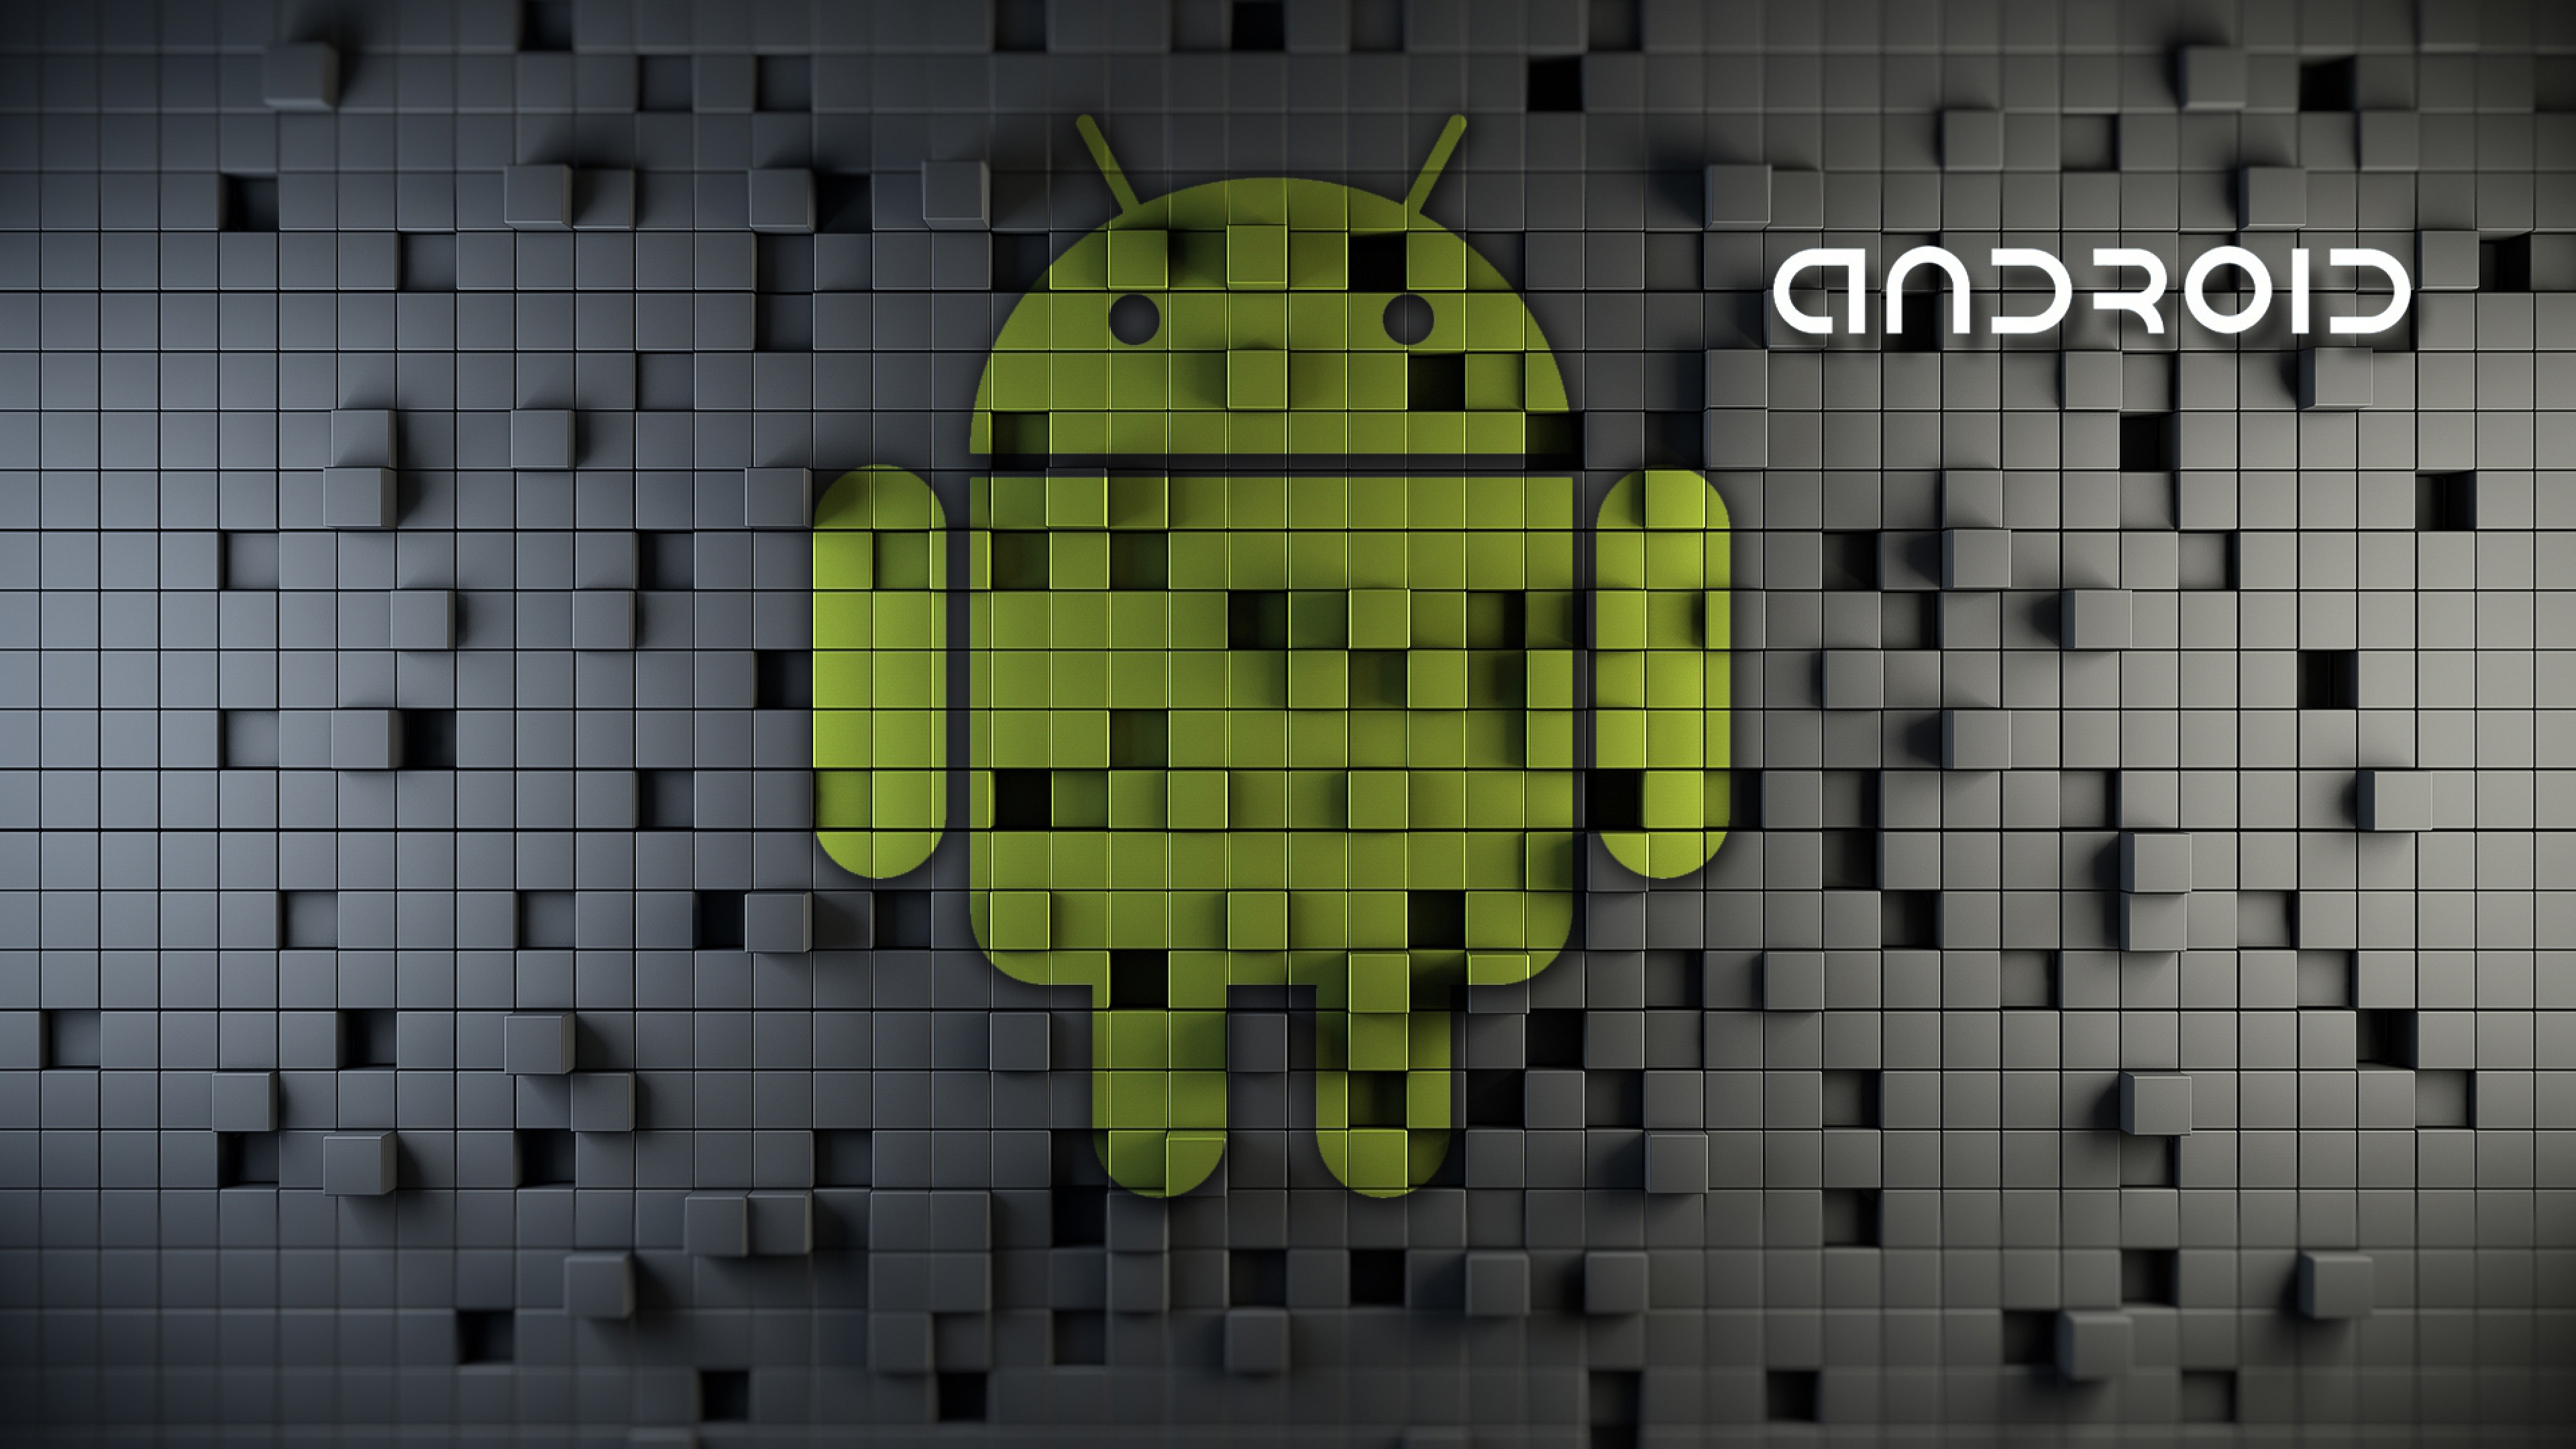 android background wallpaper #11